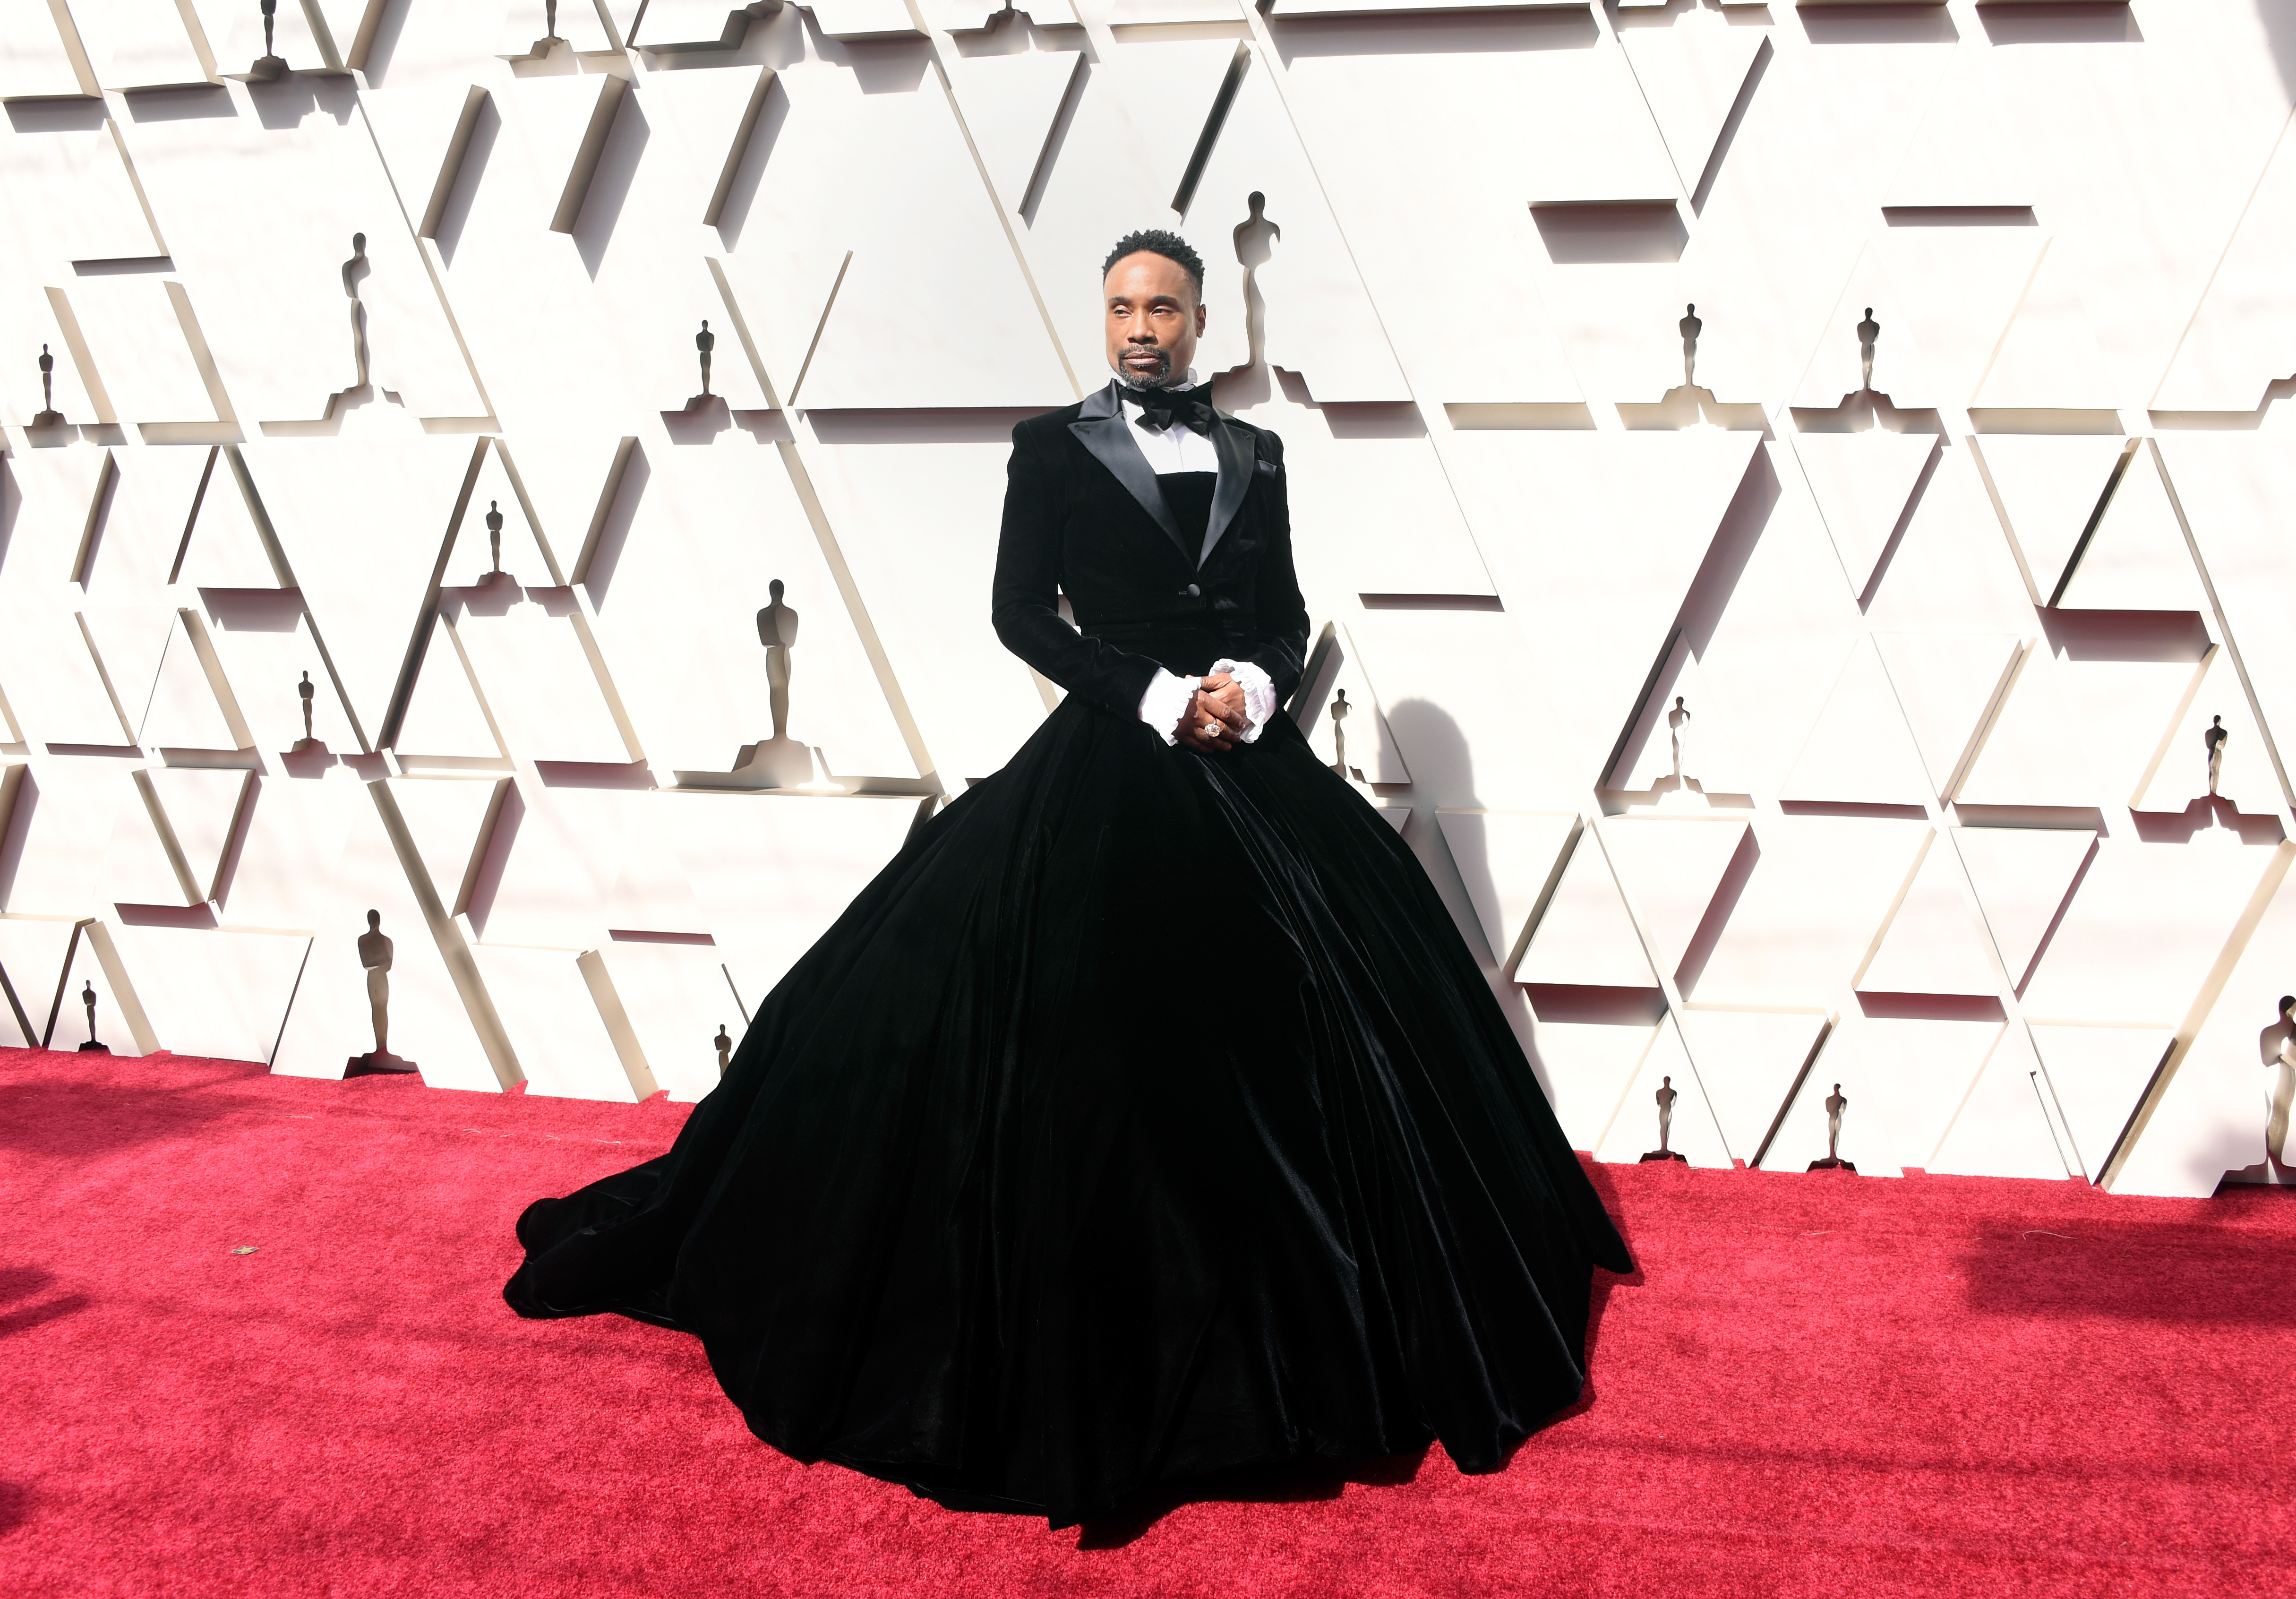 Billy Porter attends the 91st Annual Academy Awards at Hollywood and Highland on February 24, 2019 in Hollywood, California. (Getty Images)